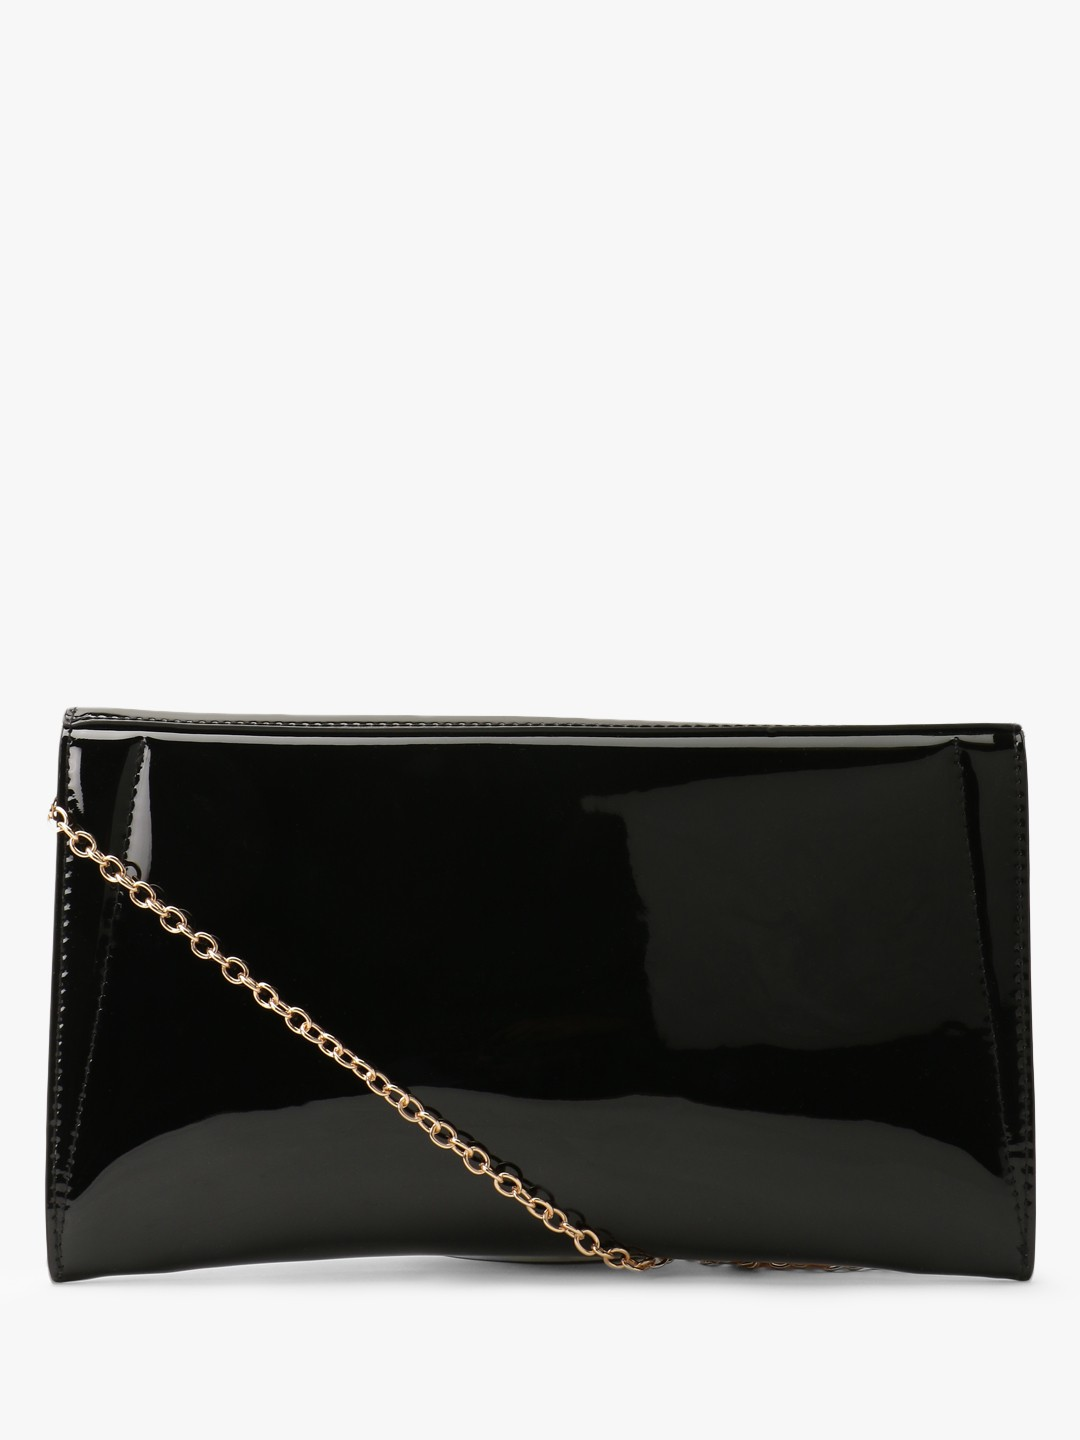 New Look Black Patent Finish Envelope Clutch 1